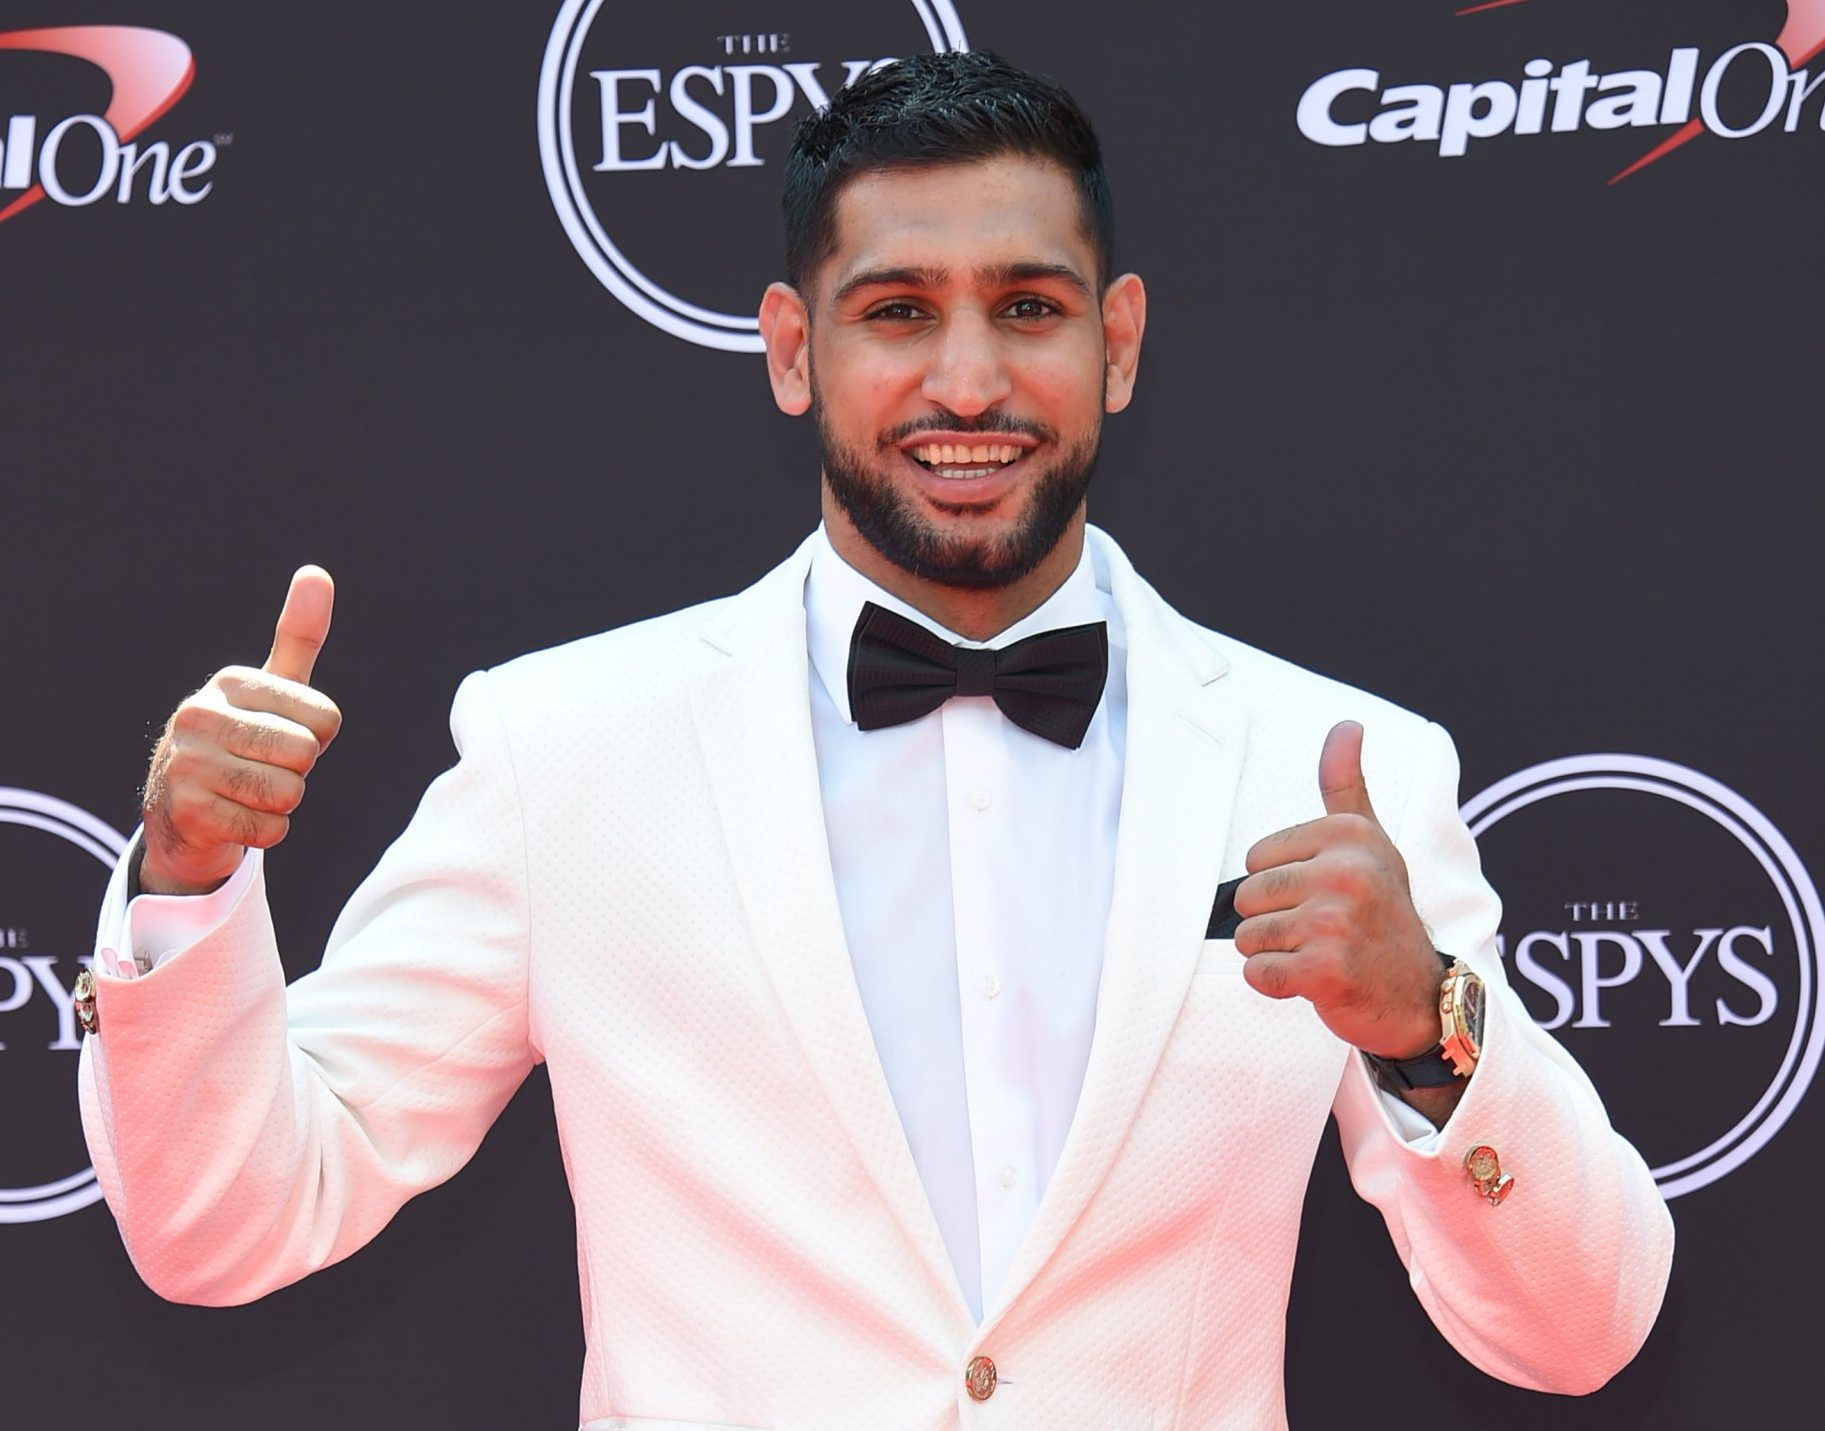 Amir Khan gives worst apology for calling Caitlyn Jenner Bruce – using wrong pronoun all the way through